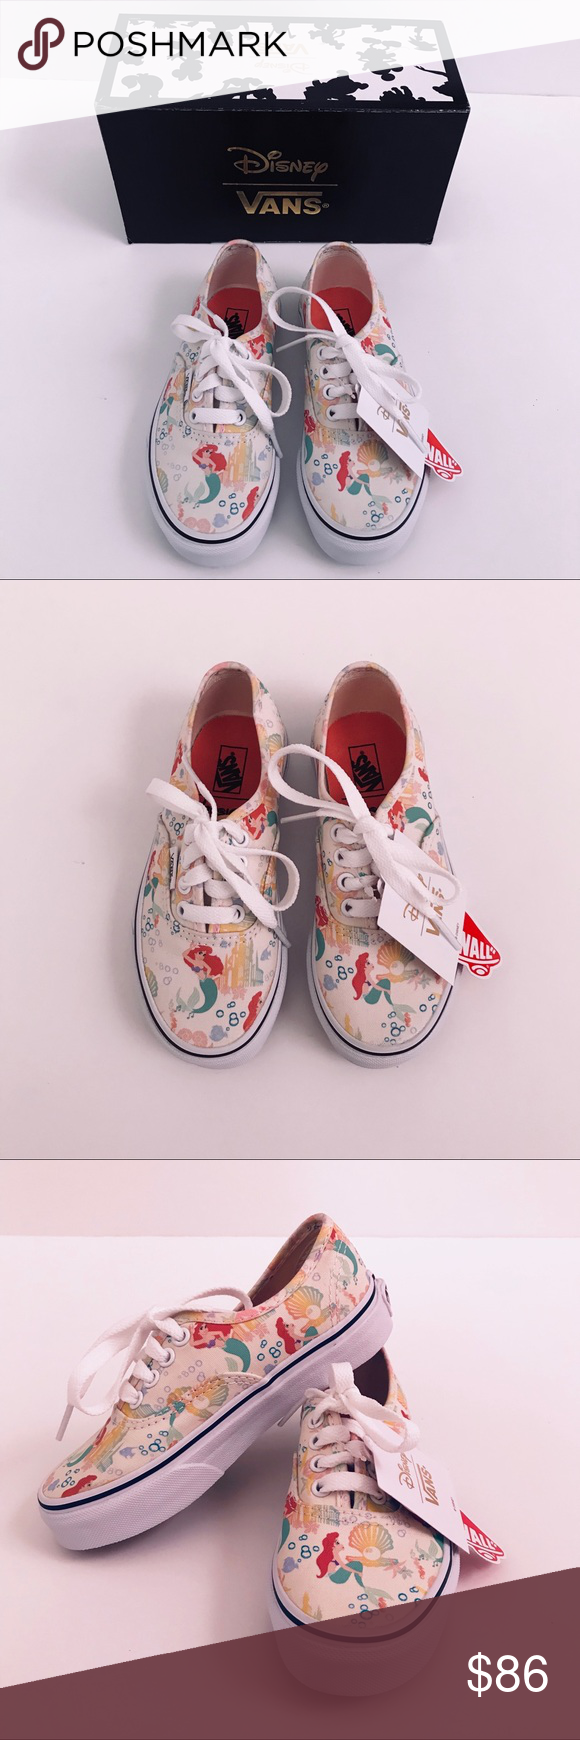 cd41bbd090e69b Disney x Vans The Little Mermaid Ariel Vans NWT